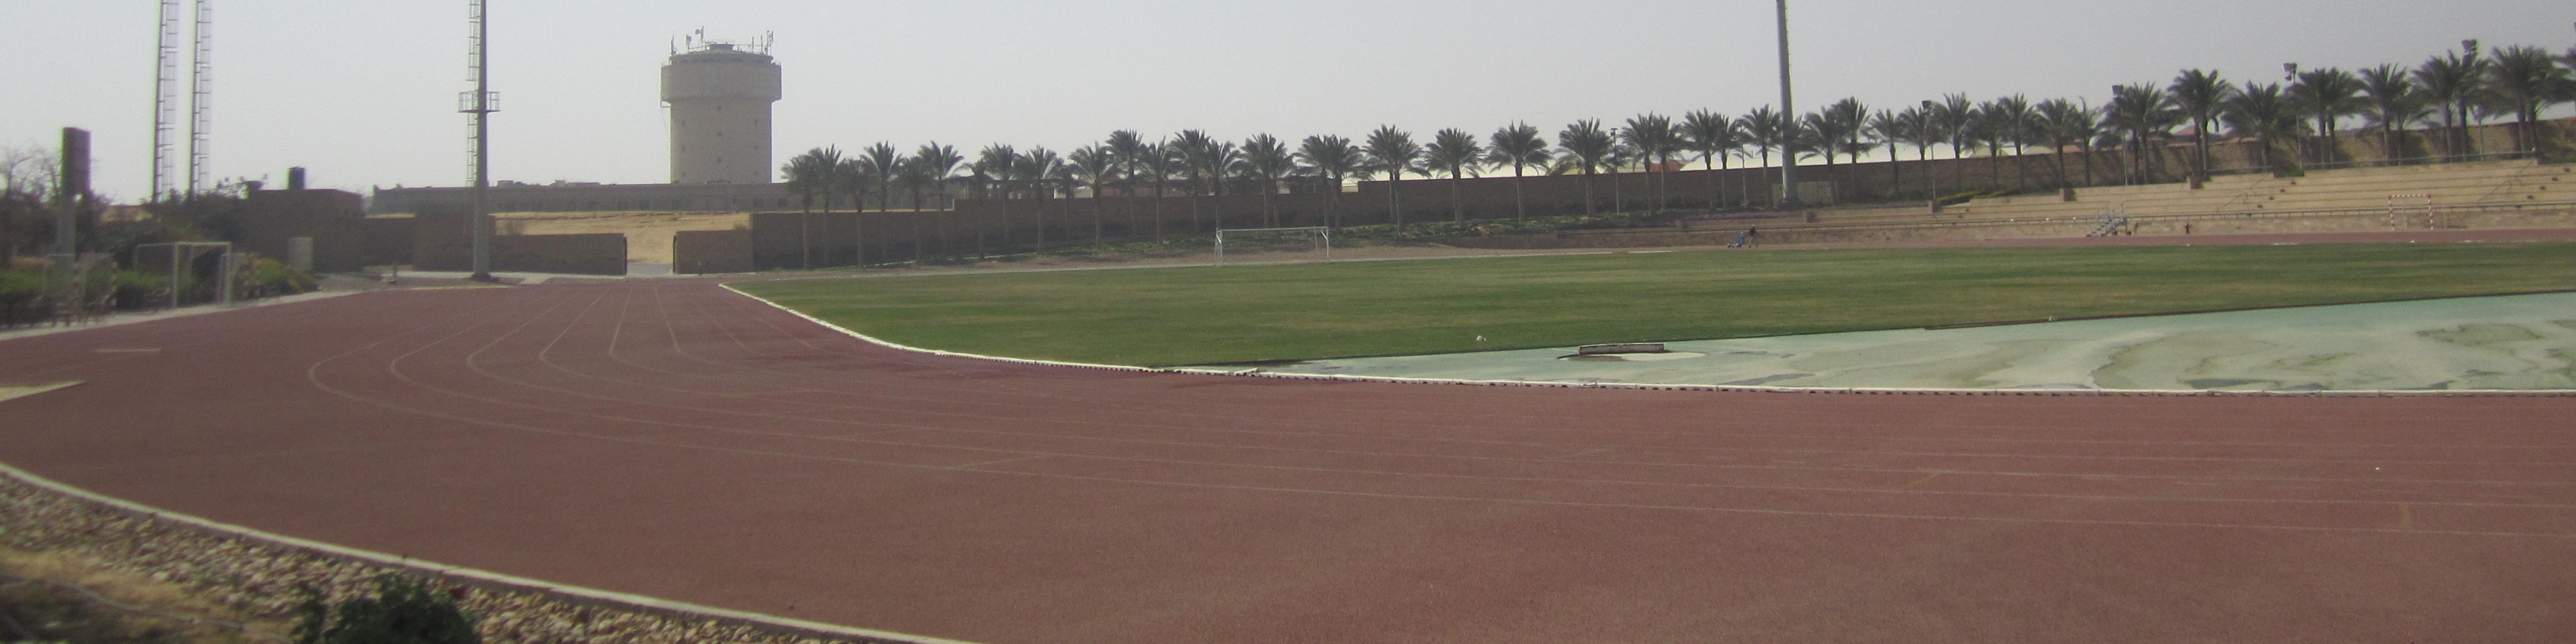 Khalaf Ahmad Al Habtoor Football and Track Stadium